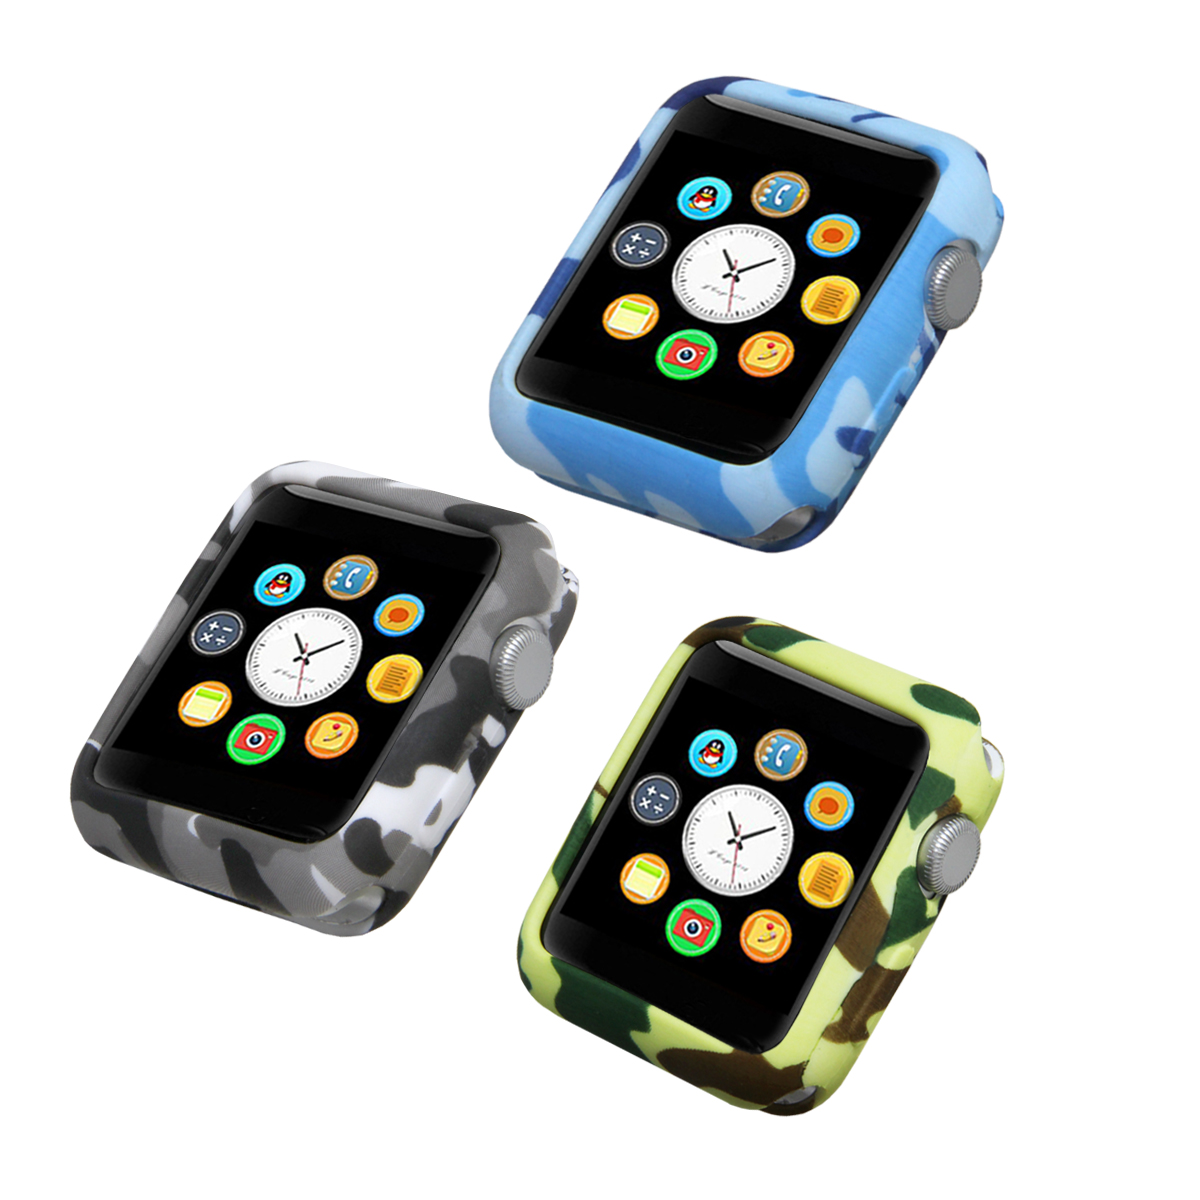 TPU camouflage shell Case for Apple Watch serise 3 2 Colorful PC Frame cover shell 38 mm 42 mm perfect match 6color bumper rock protective tpu pc bumper frame case for iphone 6 4 7 orange